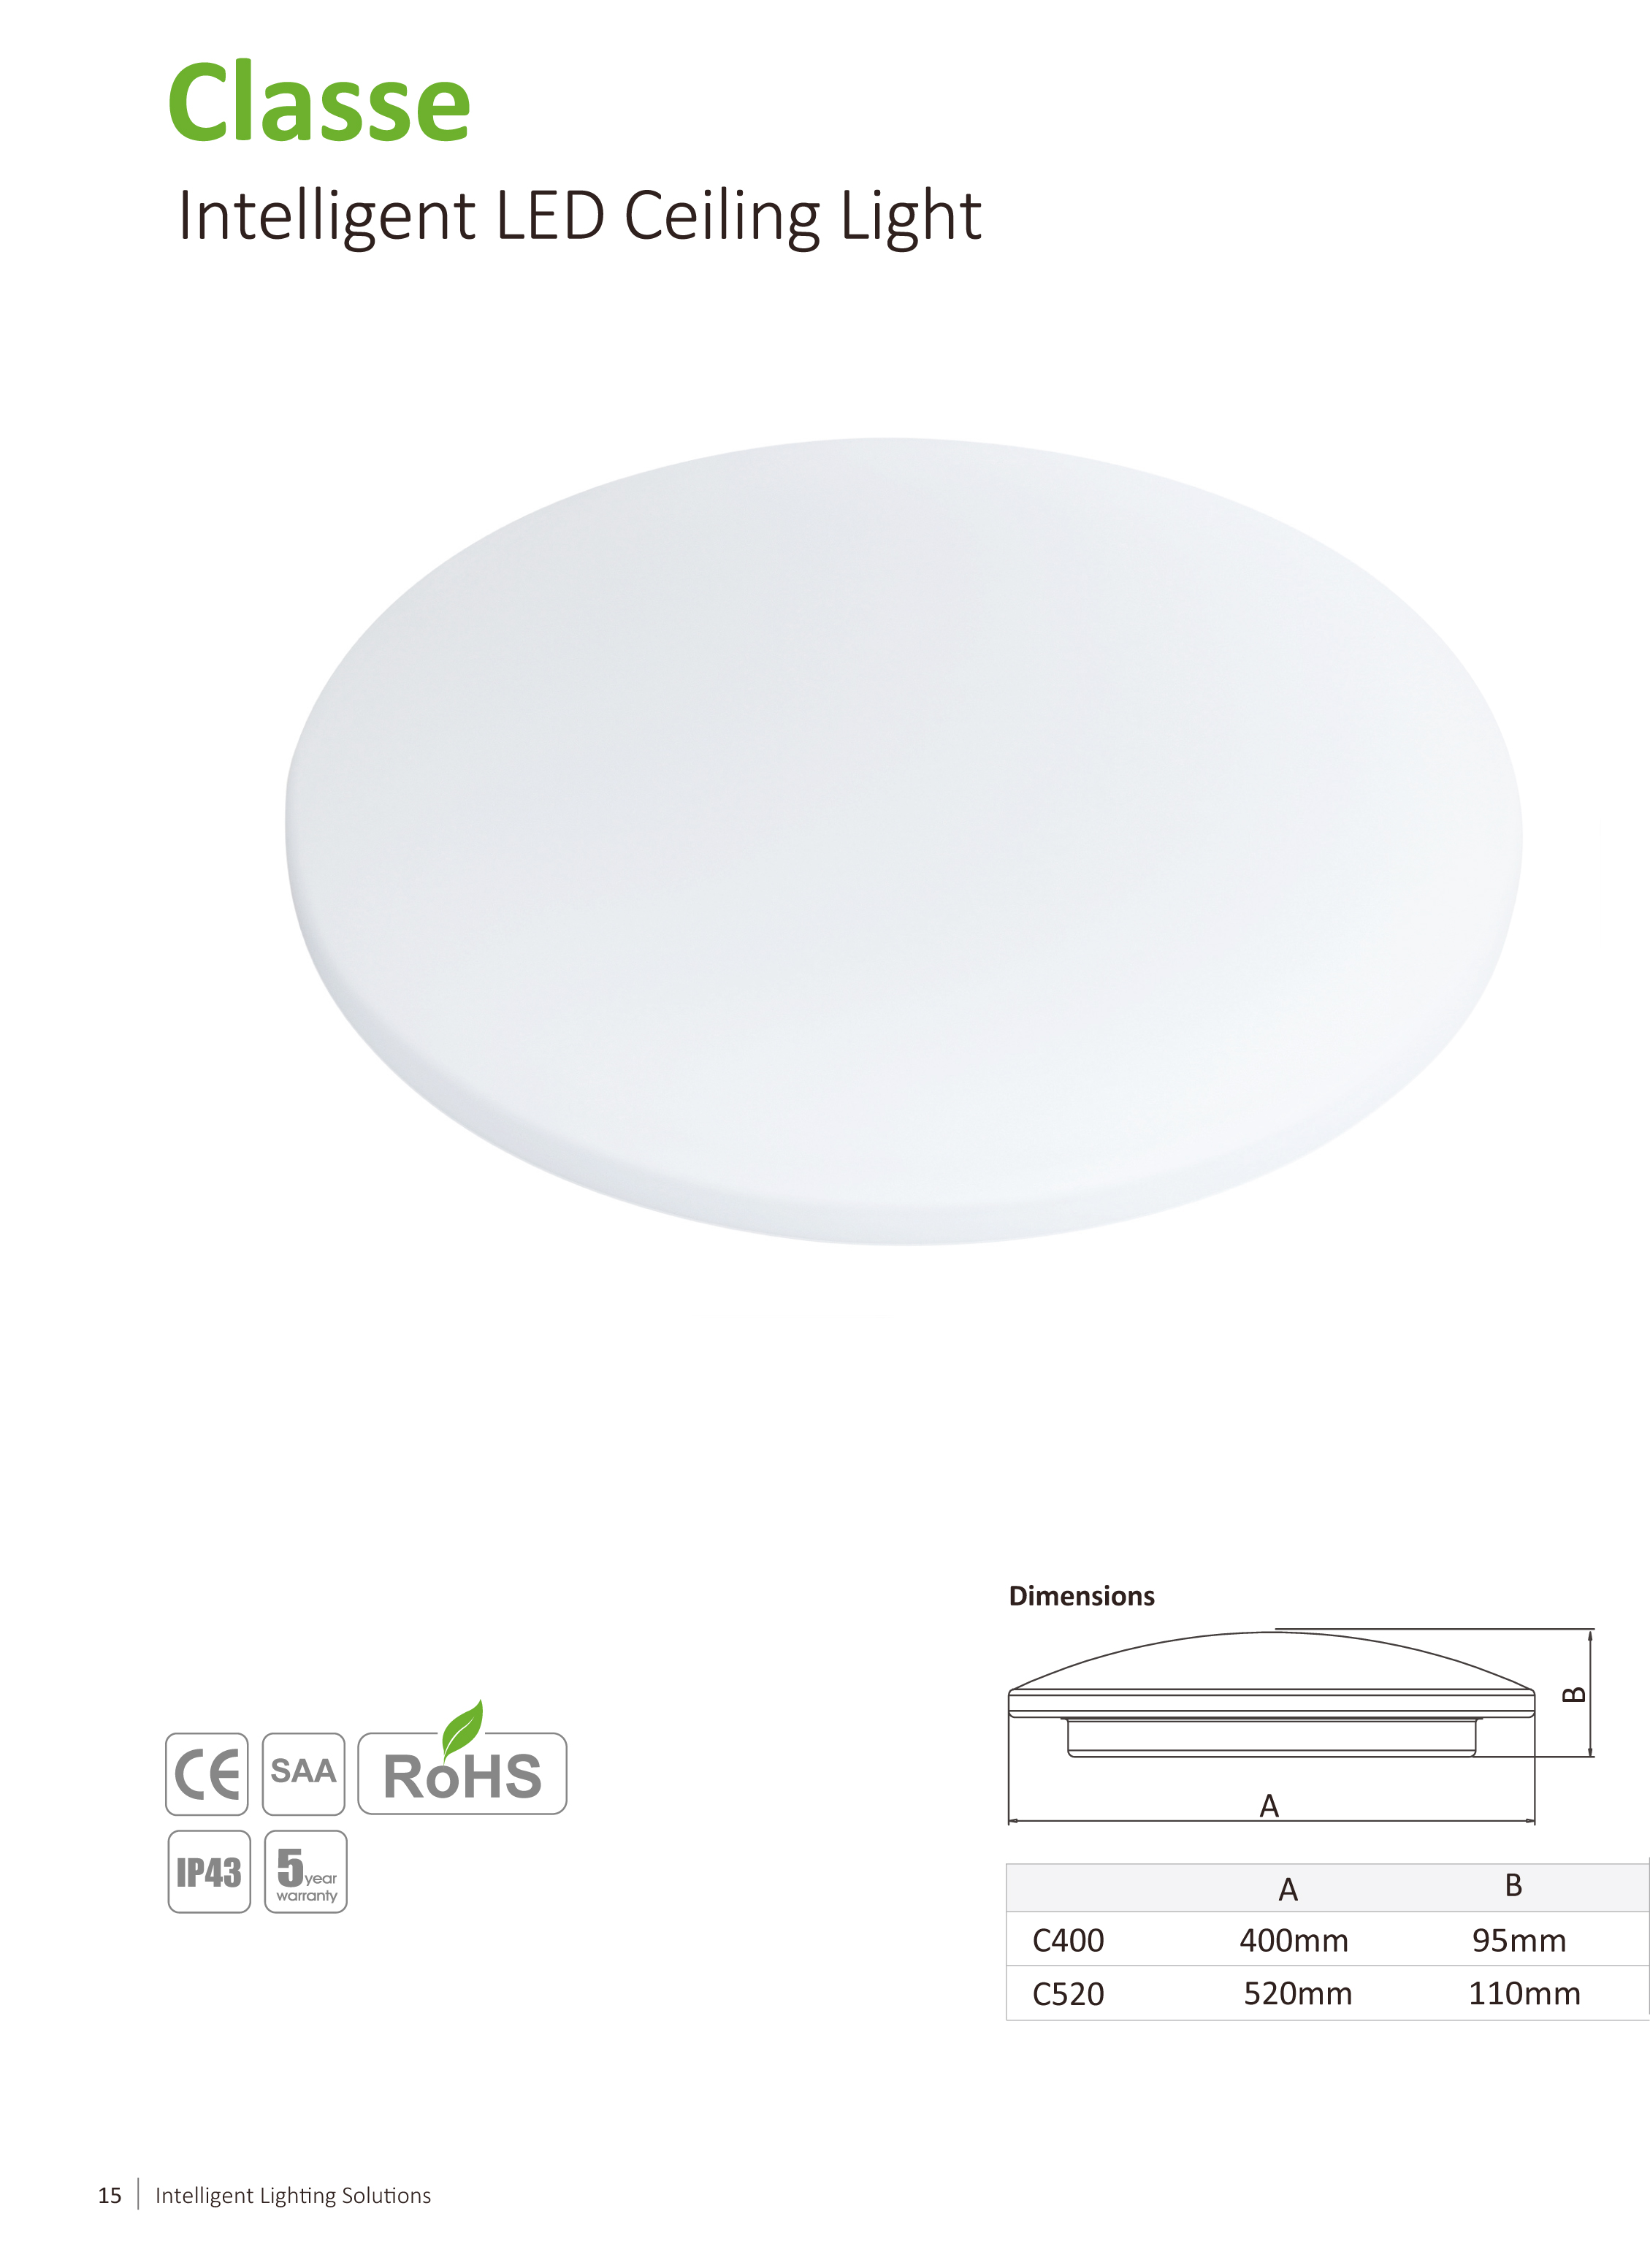 Ceiling LED light Classe C400 20W Glass Diffuser-dynaluxx